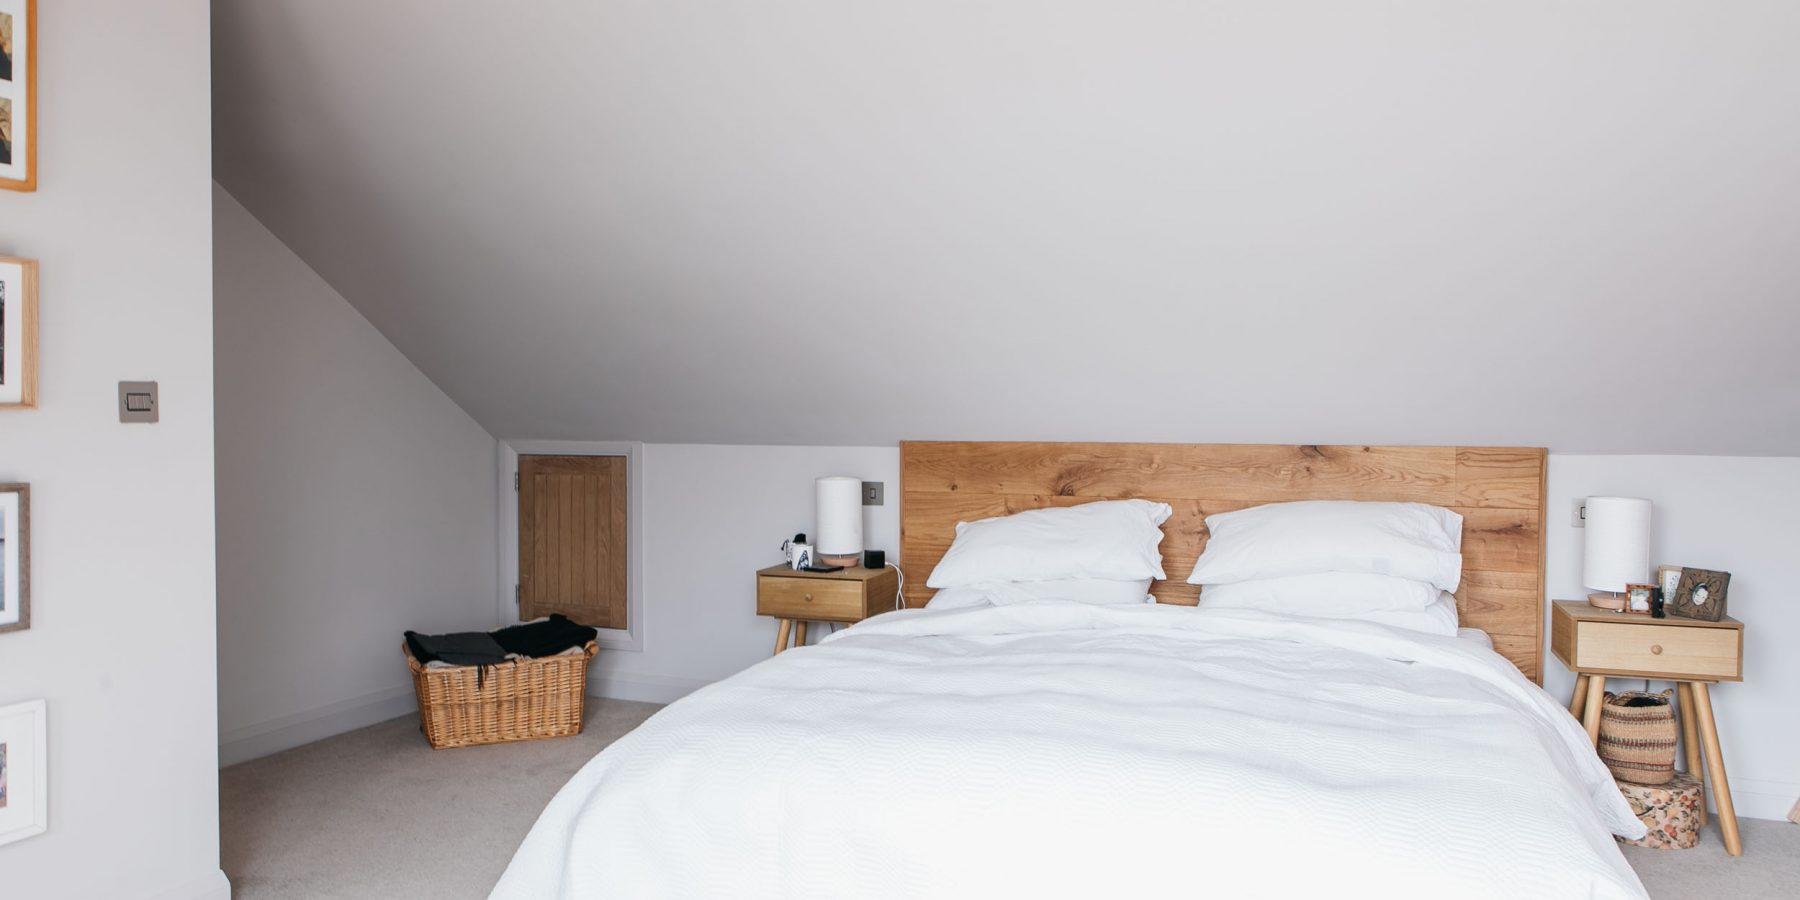 Thumbnail of http://White%20bed%20with%20wooden%20headboard